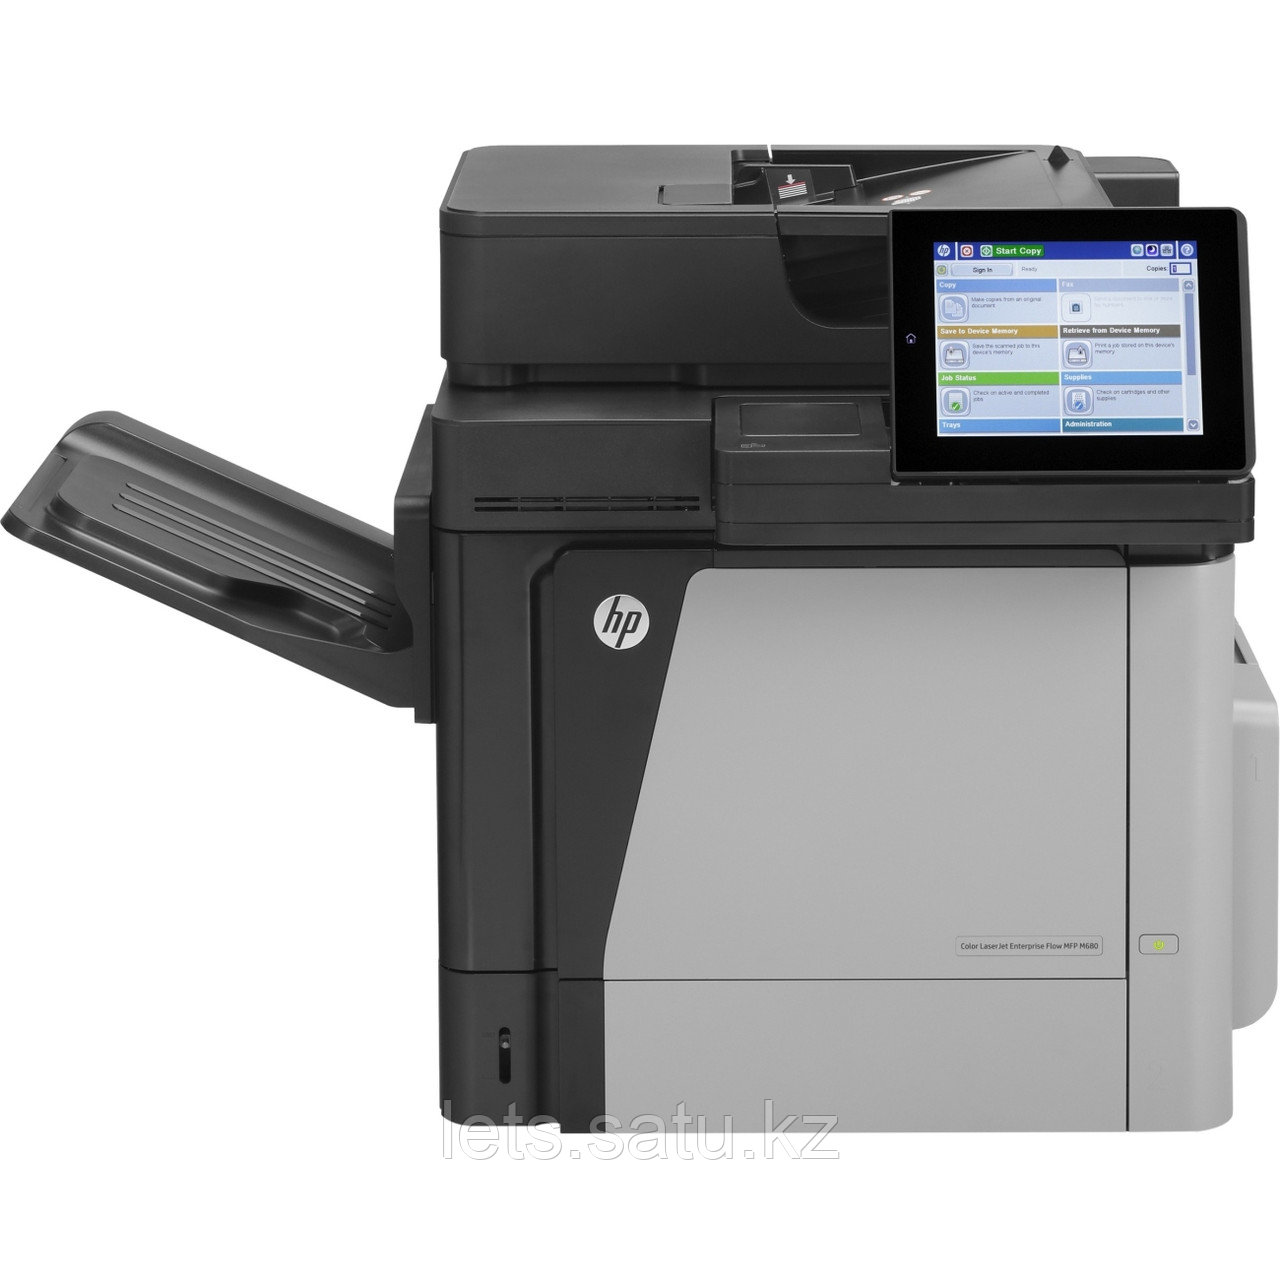 "МФУ HP Color LaserJet Enterprise M680dn CZ248A (Art:904304723) - Интернет-магазин ""Lets!"" в Алматы"